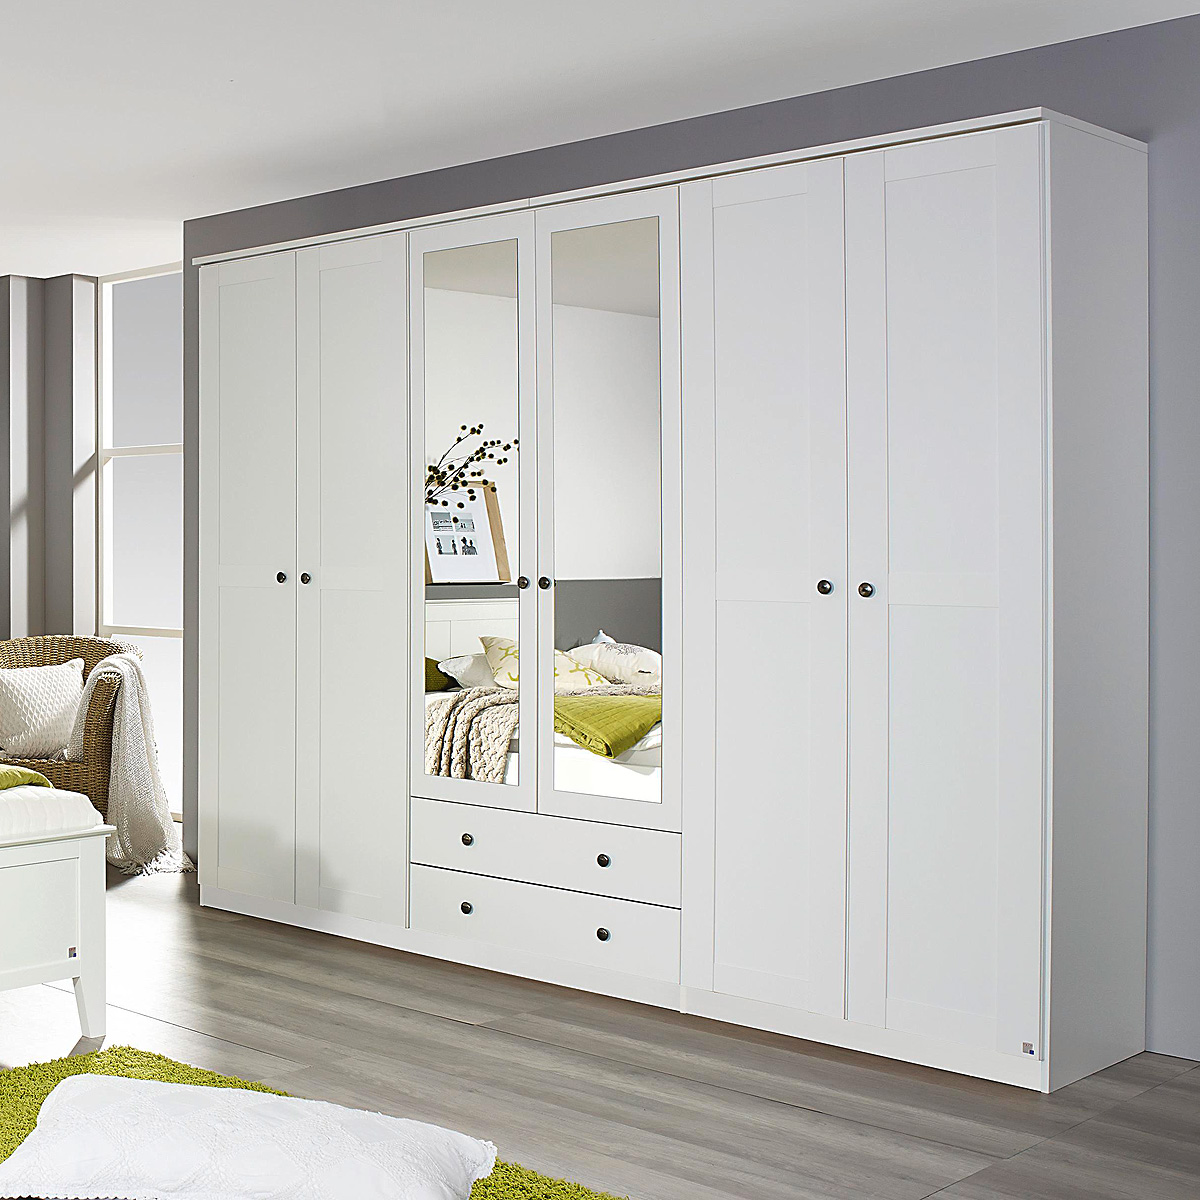 schrank mit vorhang wandschrank odeon schrank. Black Bedroom Furniture Sets. Home Design Ideas